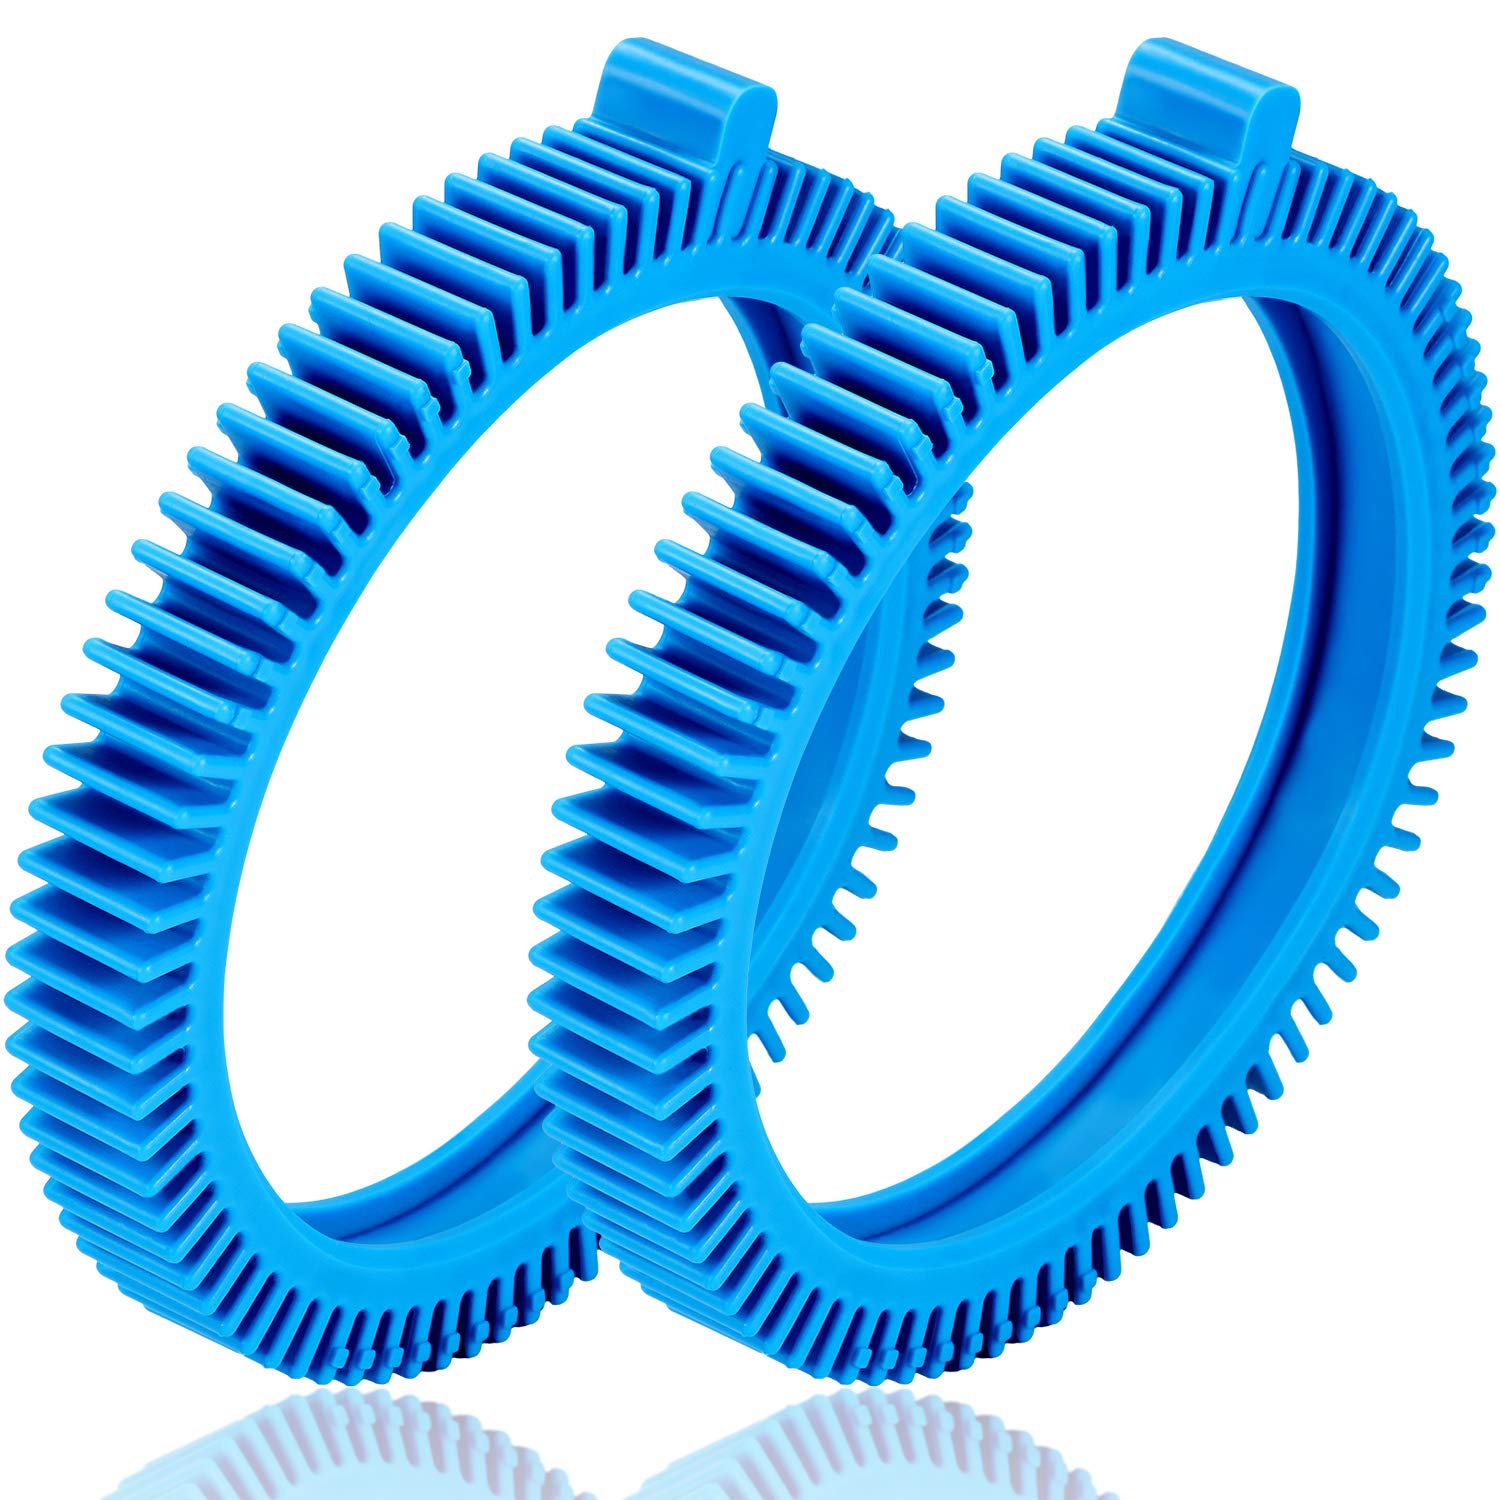 2 Pieces 896584000-143 Blue Front Tire Kit, Front Tires with Hump Replacement for Pool Cleaners 2X, 4X, Pressure - Concrete Pool